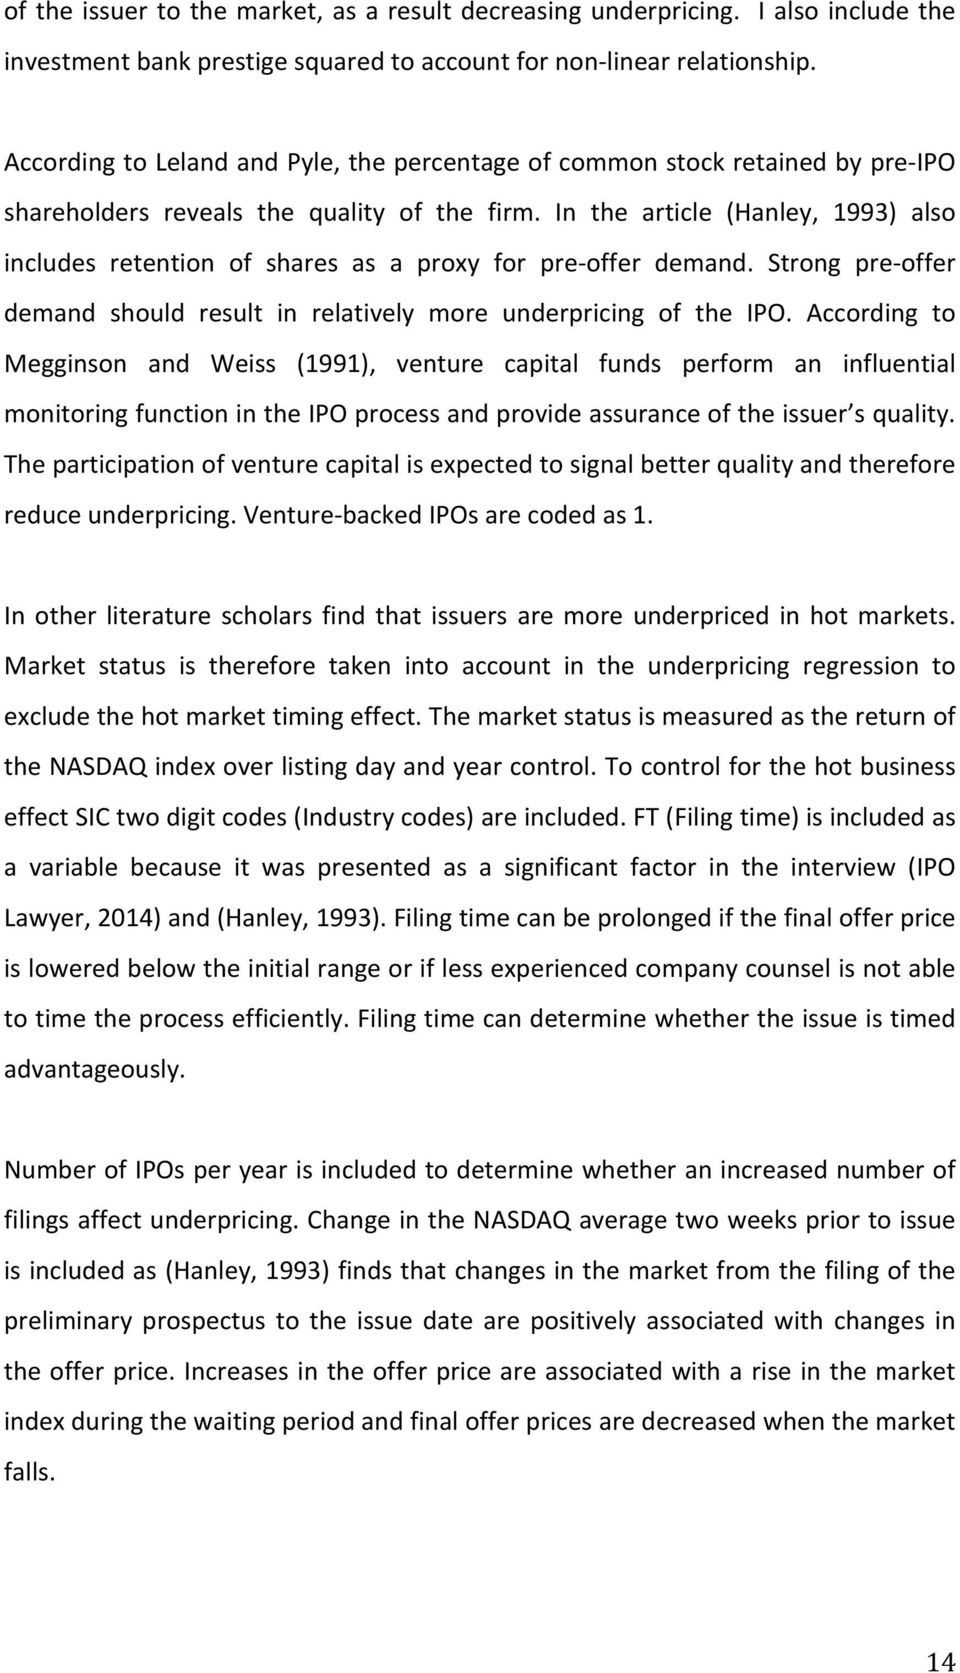 In the article (Hanley, 1993) also includes retention of shares as a proxy for pre- offer demand. Strong pre- offer demand should result in relatively more underpricing of the IPO.